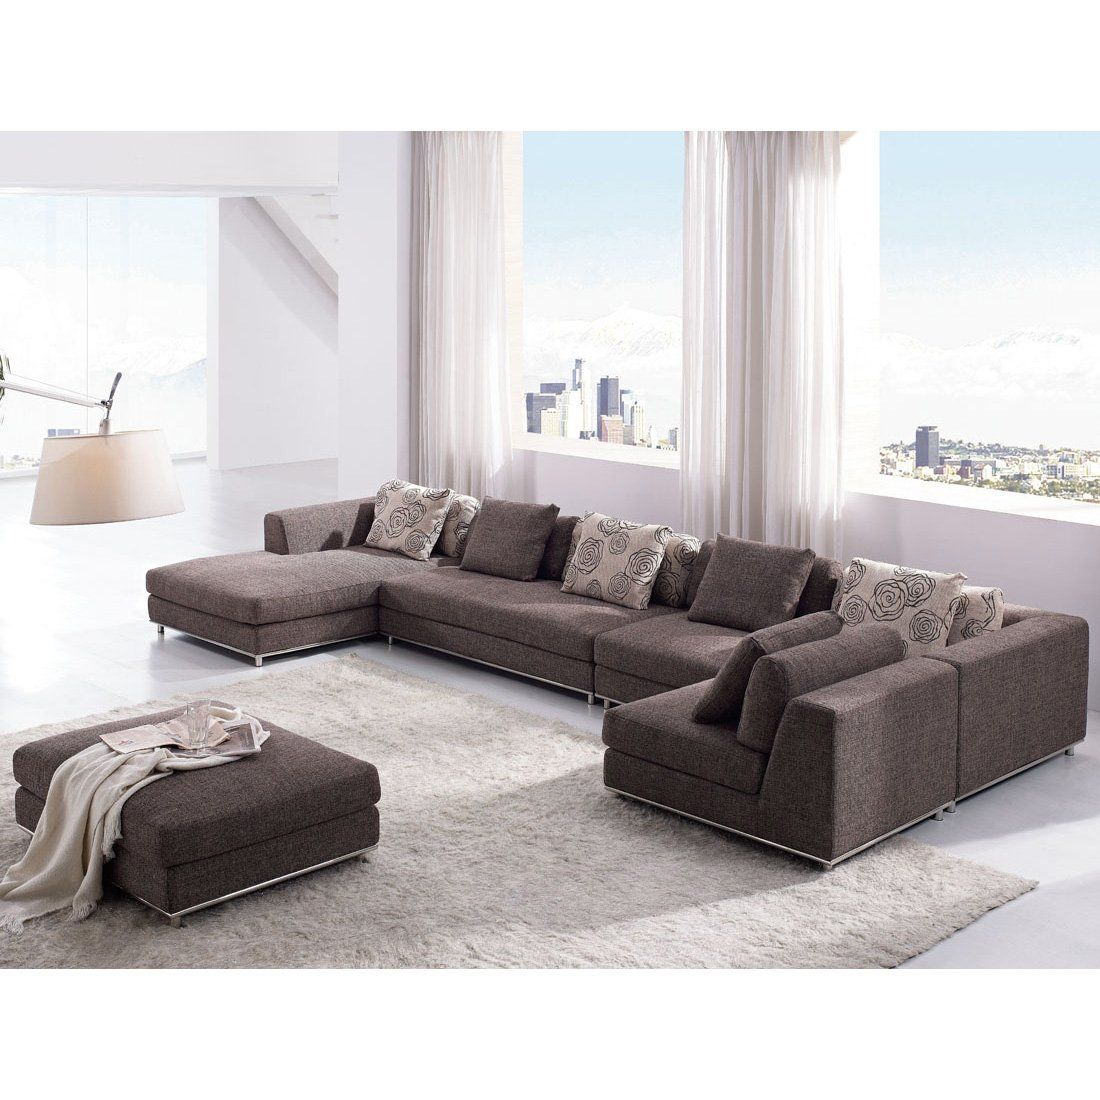 Bat Couch Possibility Tosh Furniture Contemporary Modern Brown Fabric Sectional Sofa 2720 00